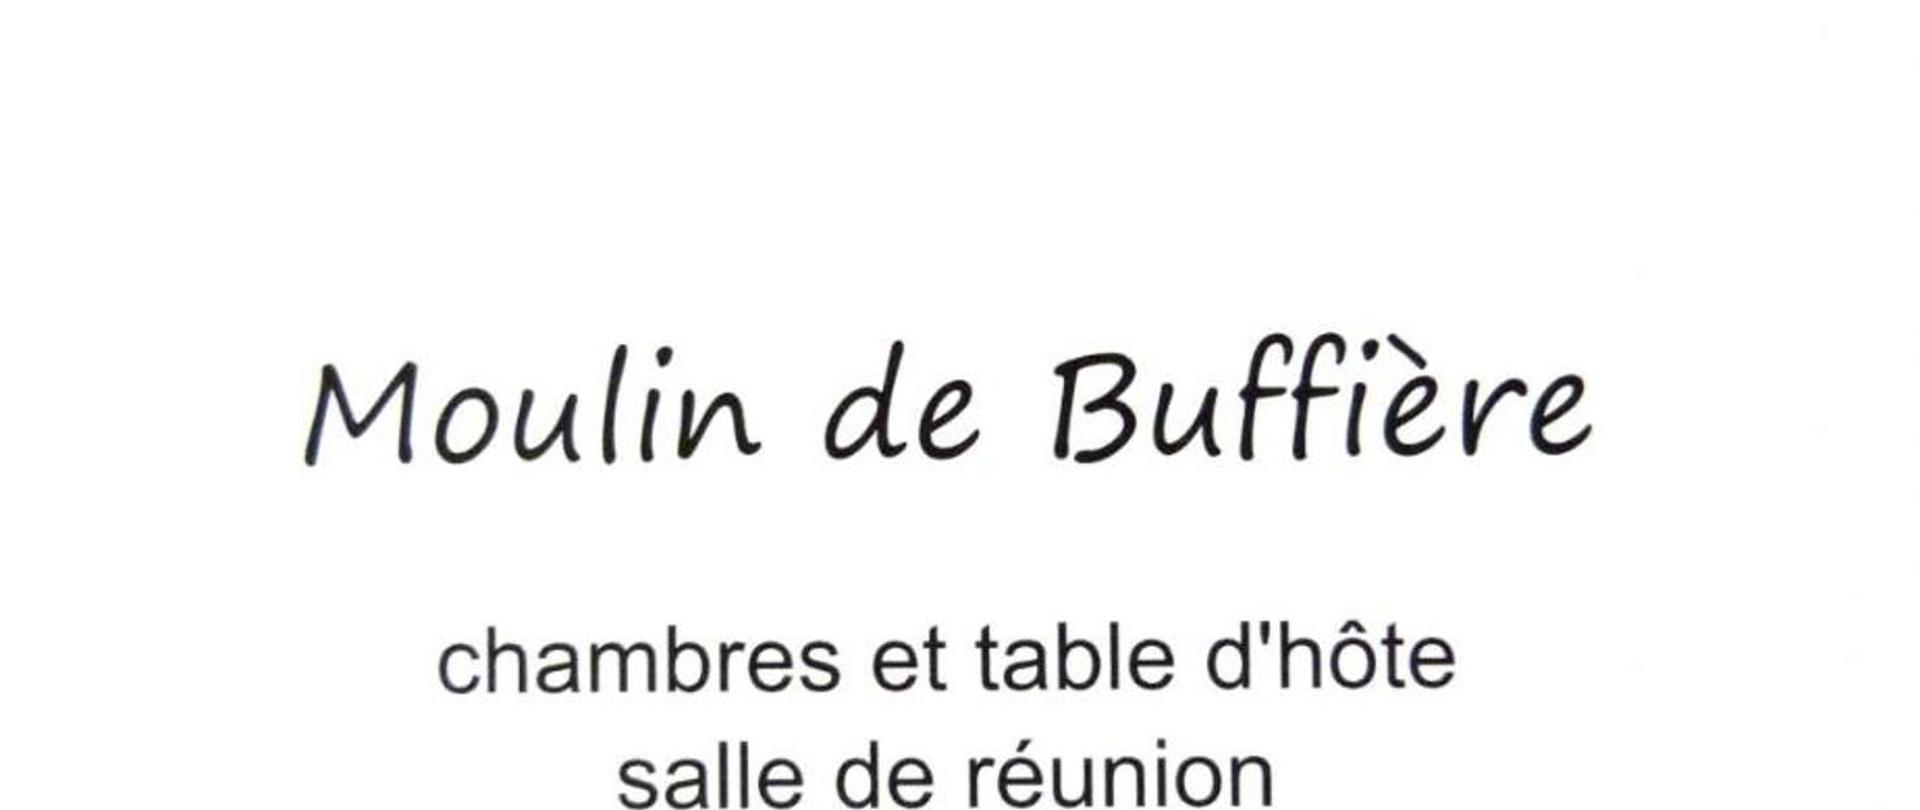 Moulin de Buffière